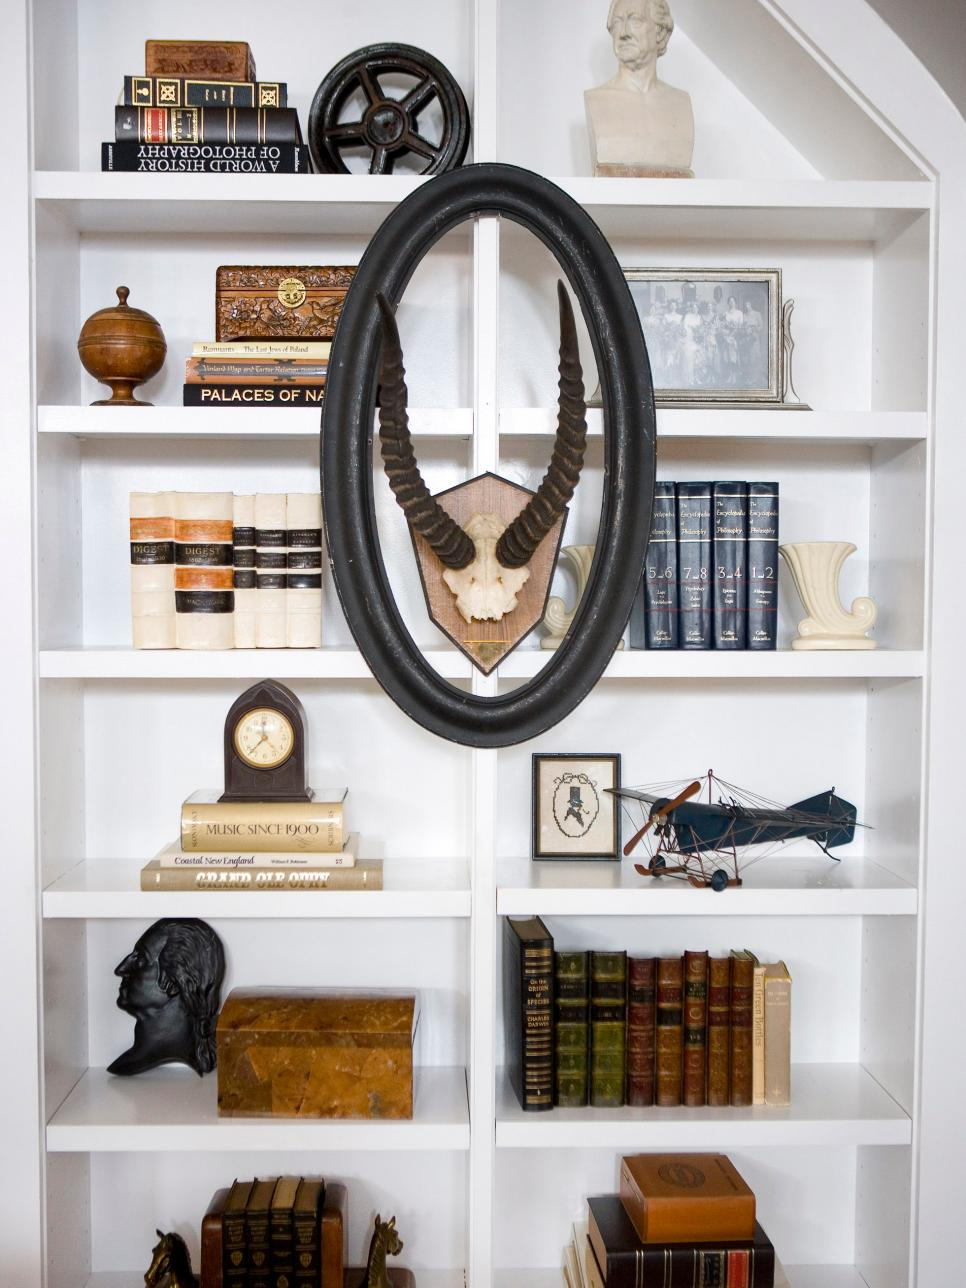 Shelf Decorating Ideas Bookshelf And Wall Shelf Decorating Ideas  Hgtv